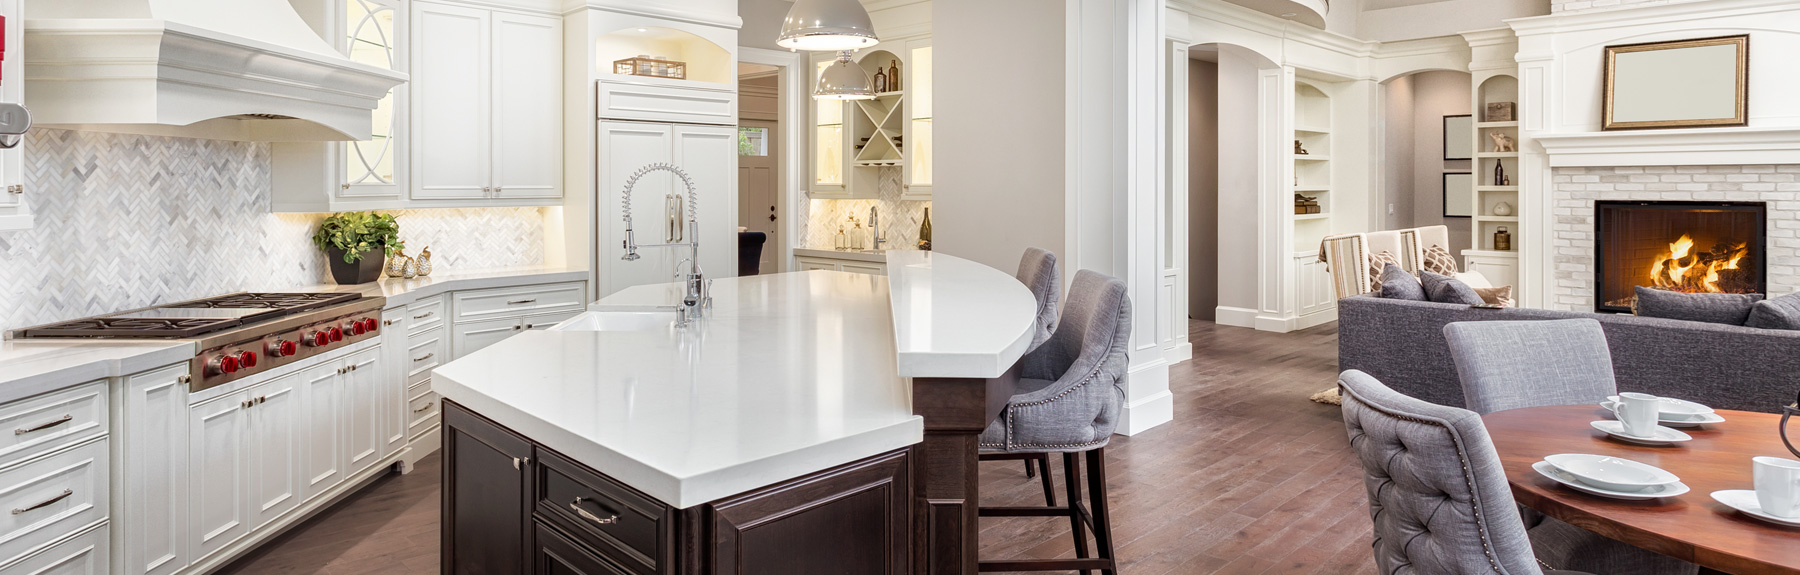 Home Improvements That Will Help Sell Your Whitehorse Home Yukon Real Estate Connection